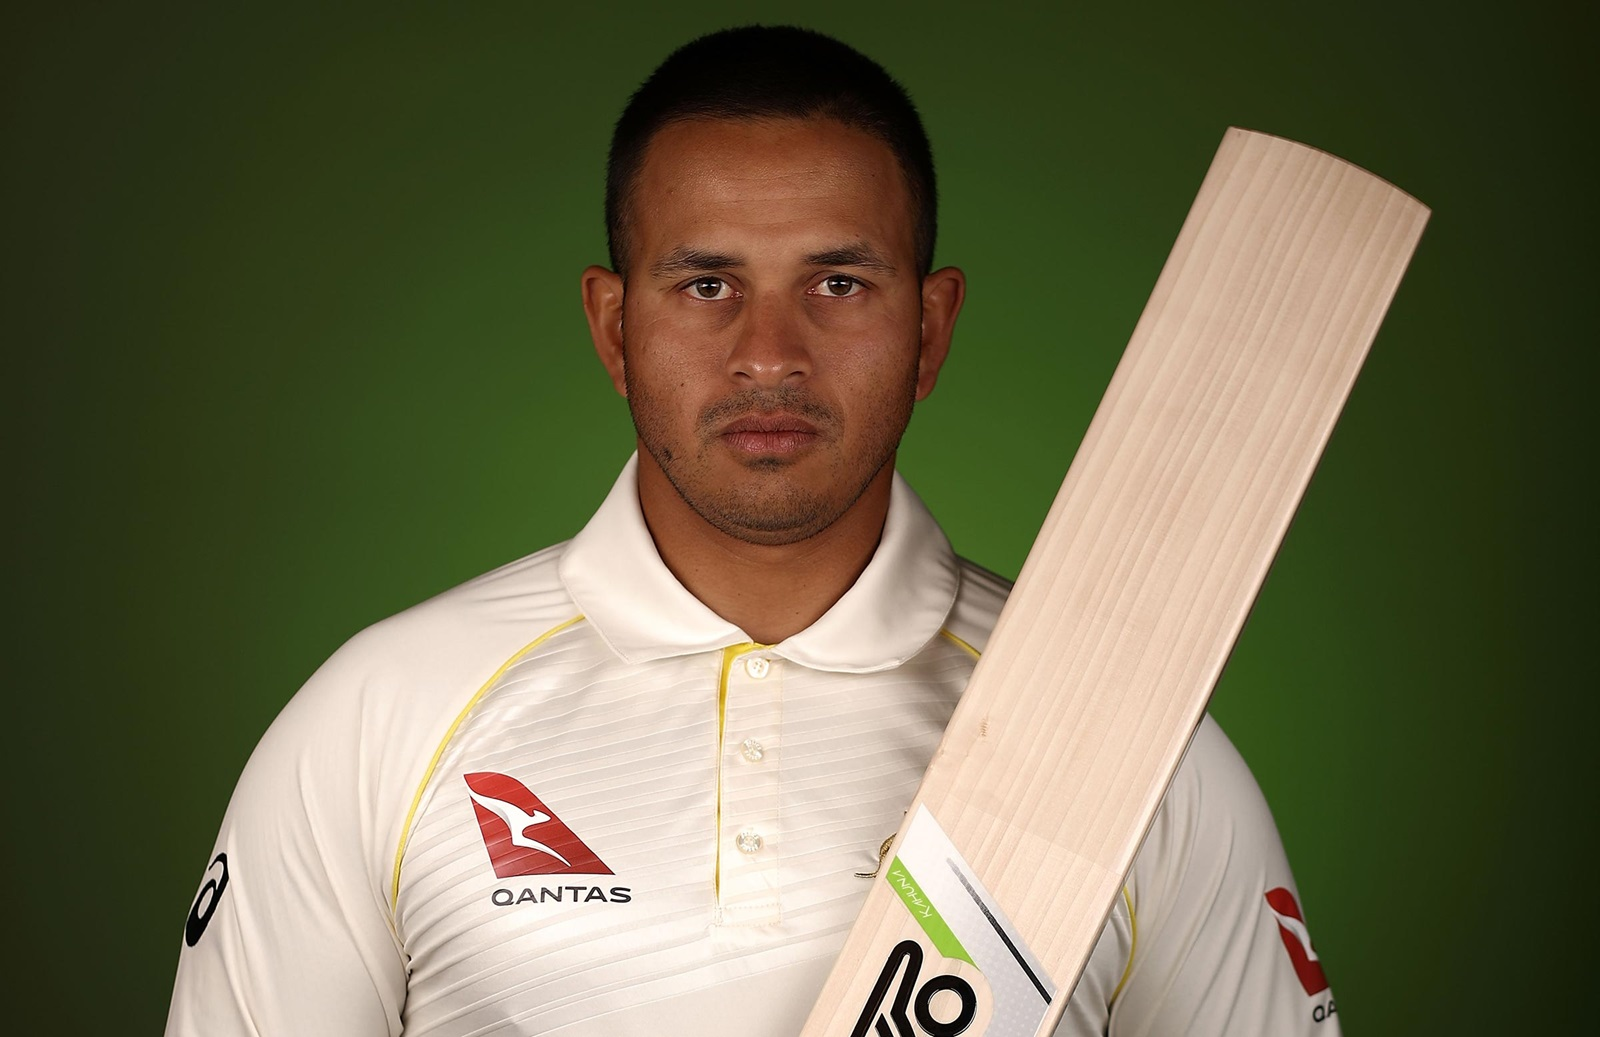 Usman Khawaja believes he is still among Australia's top six batsmen and can force his way back into the squad